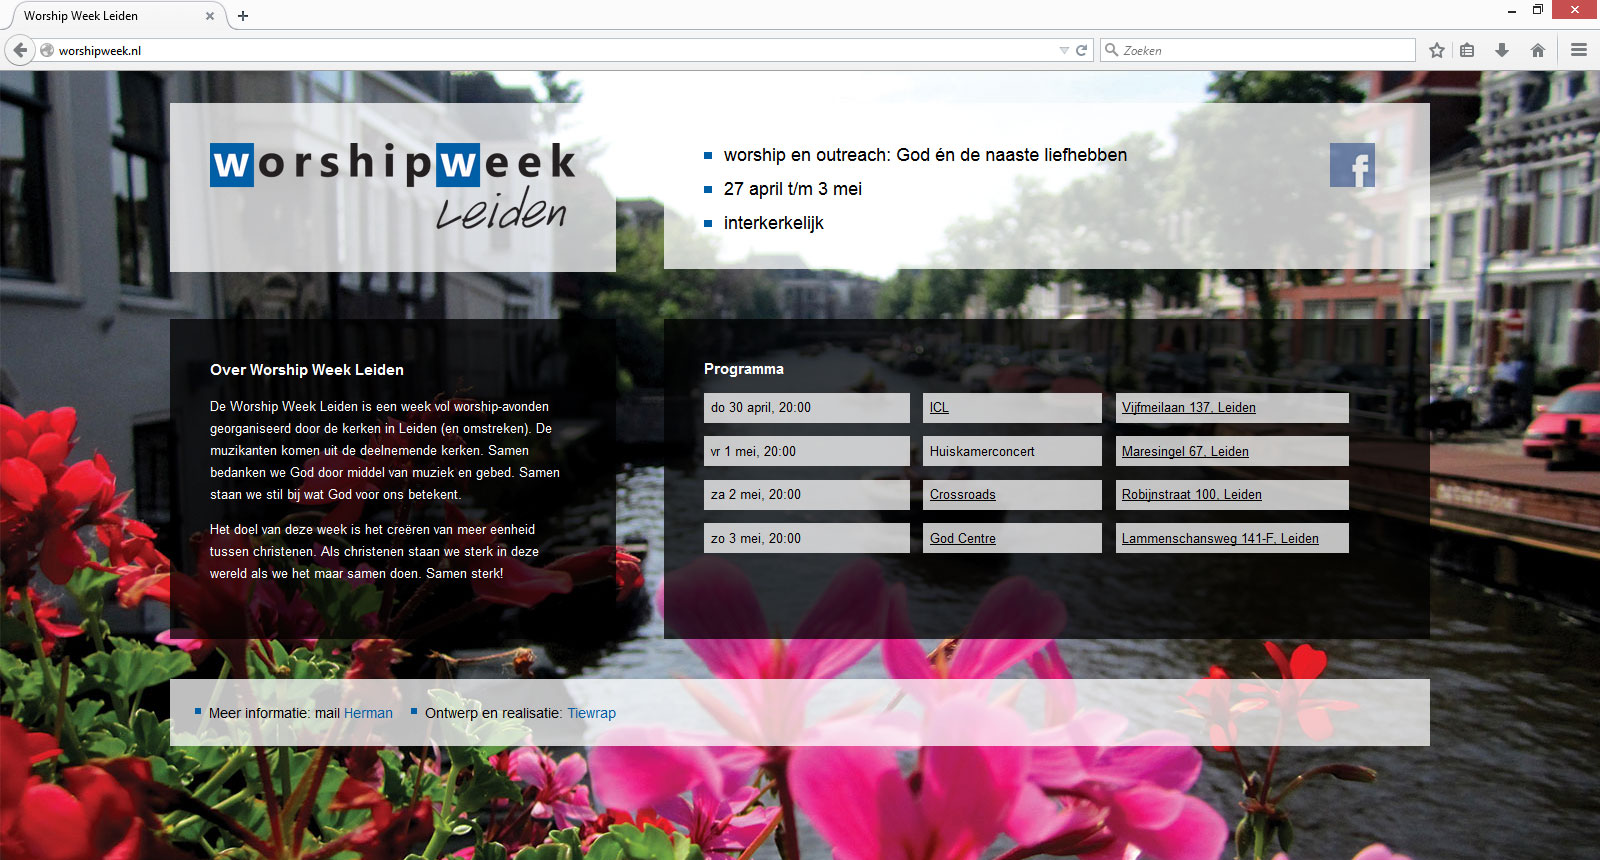 Worship Week Leiden website